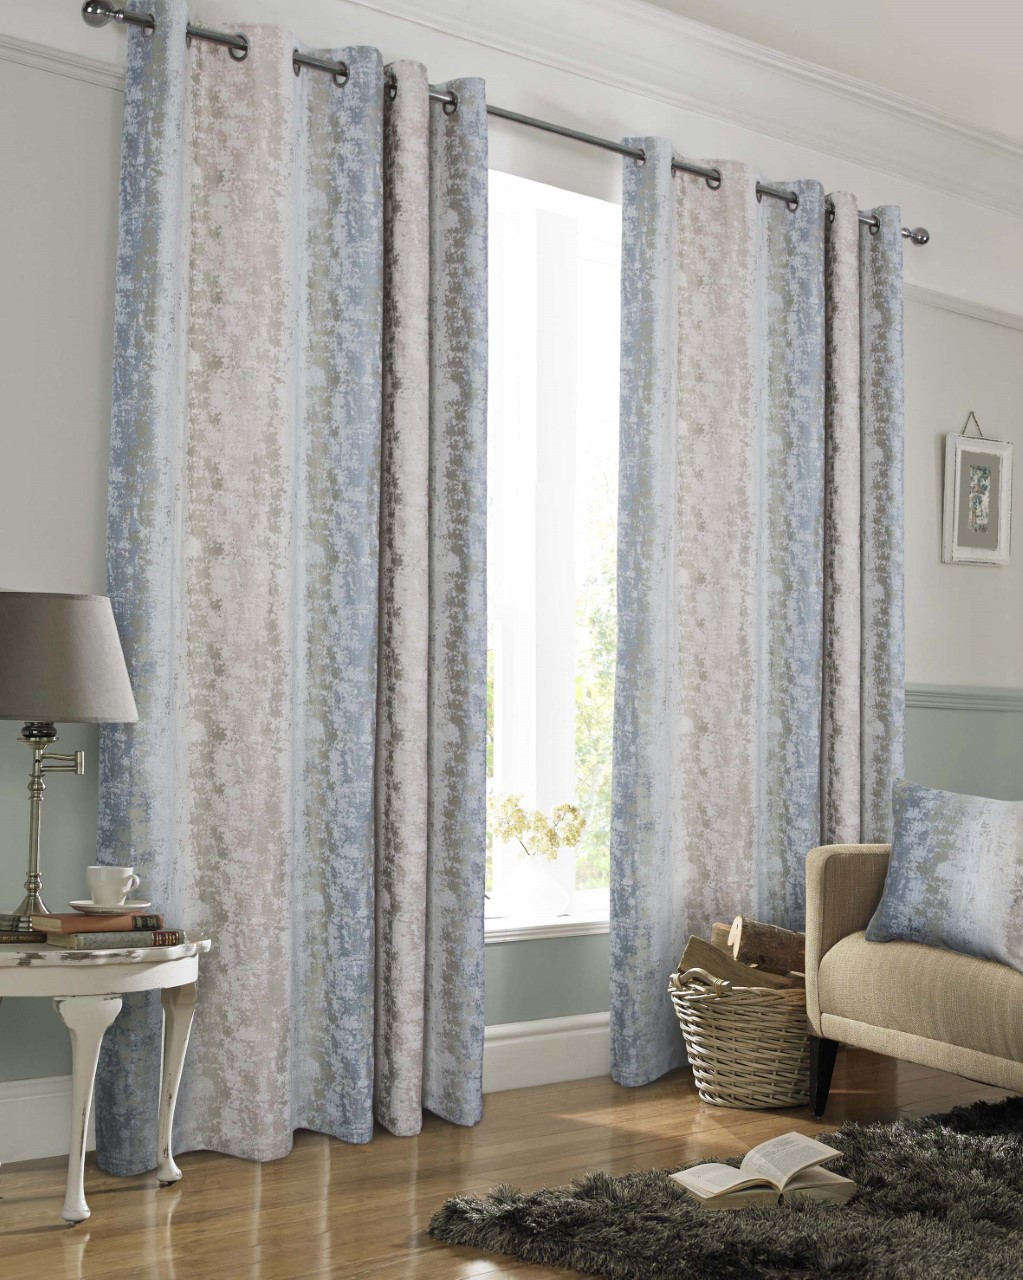 Portofino Blush Silver Heavyweight Curtains Yorkshire Linen Beds And More